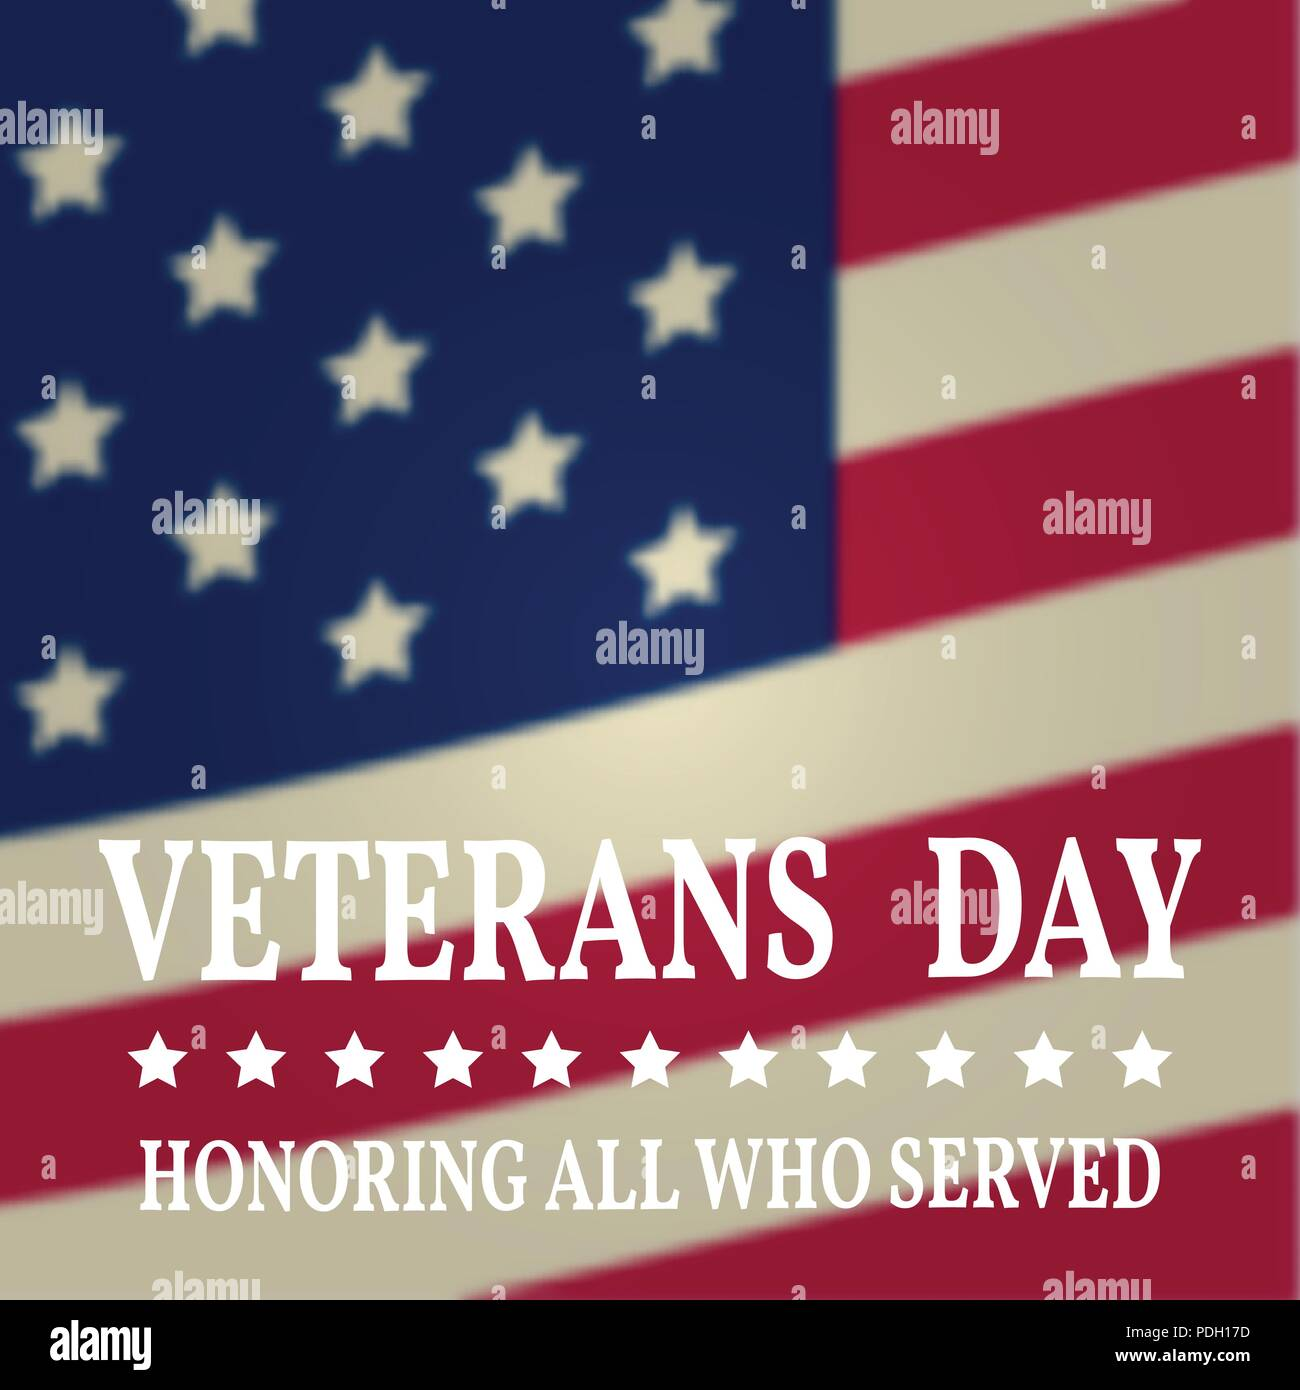 Veterans day greeting card honoring all who served typography veterans day greeting card honoring all who served typography design for veterans day stock vector m4hsunfo